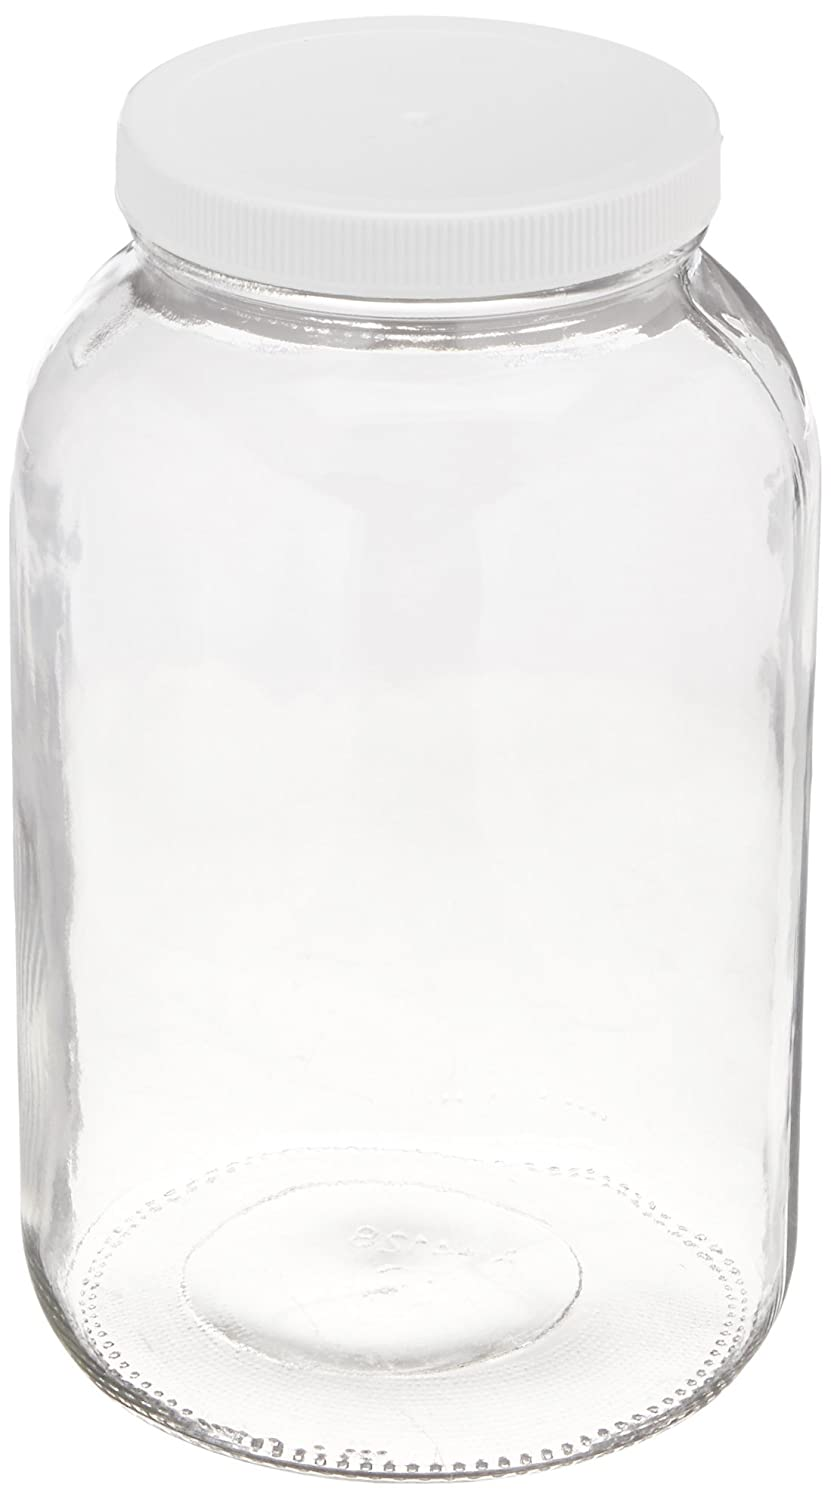 1-gallon USDA Fermentation Glass Jar AGC 1Gallonplaslid